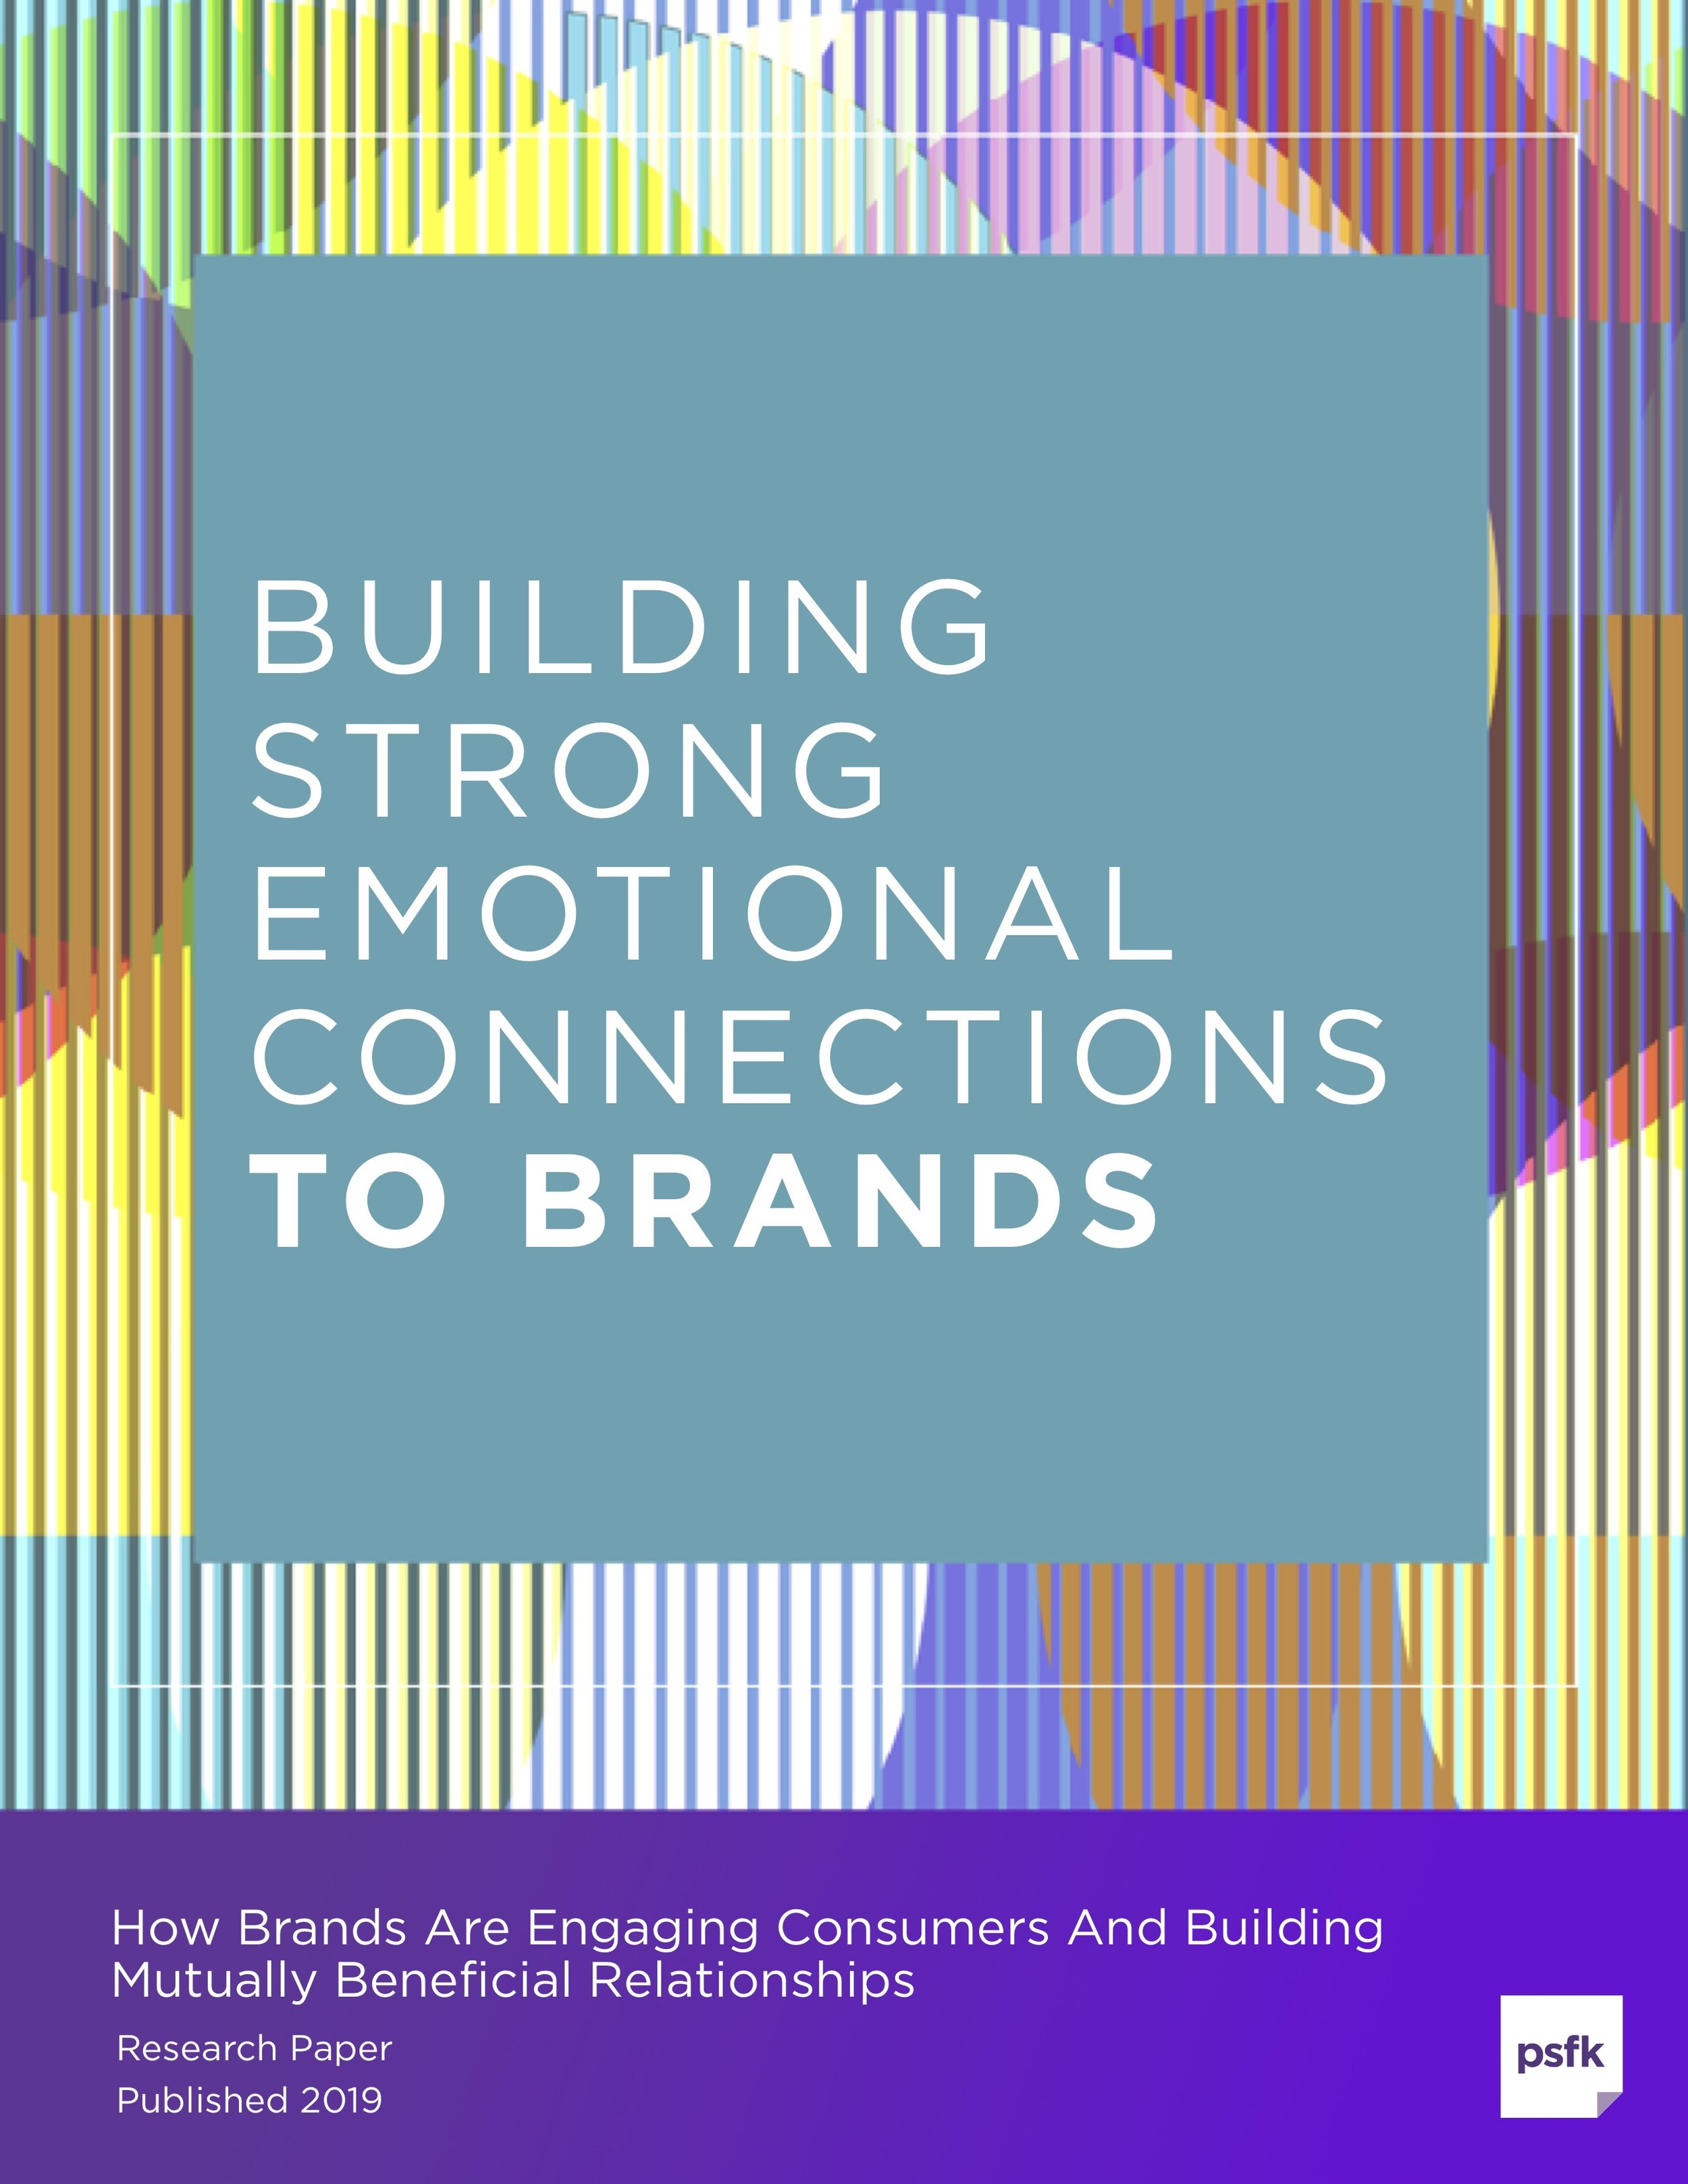 Building_Strong_Emotional_Connection_Brands_Cover.jpg